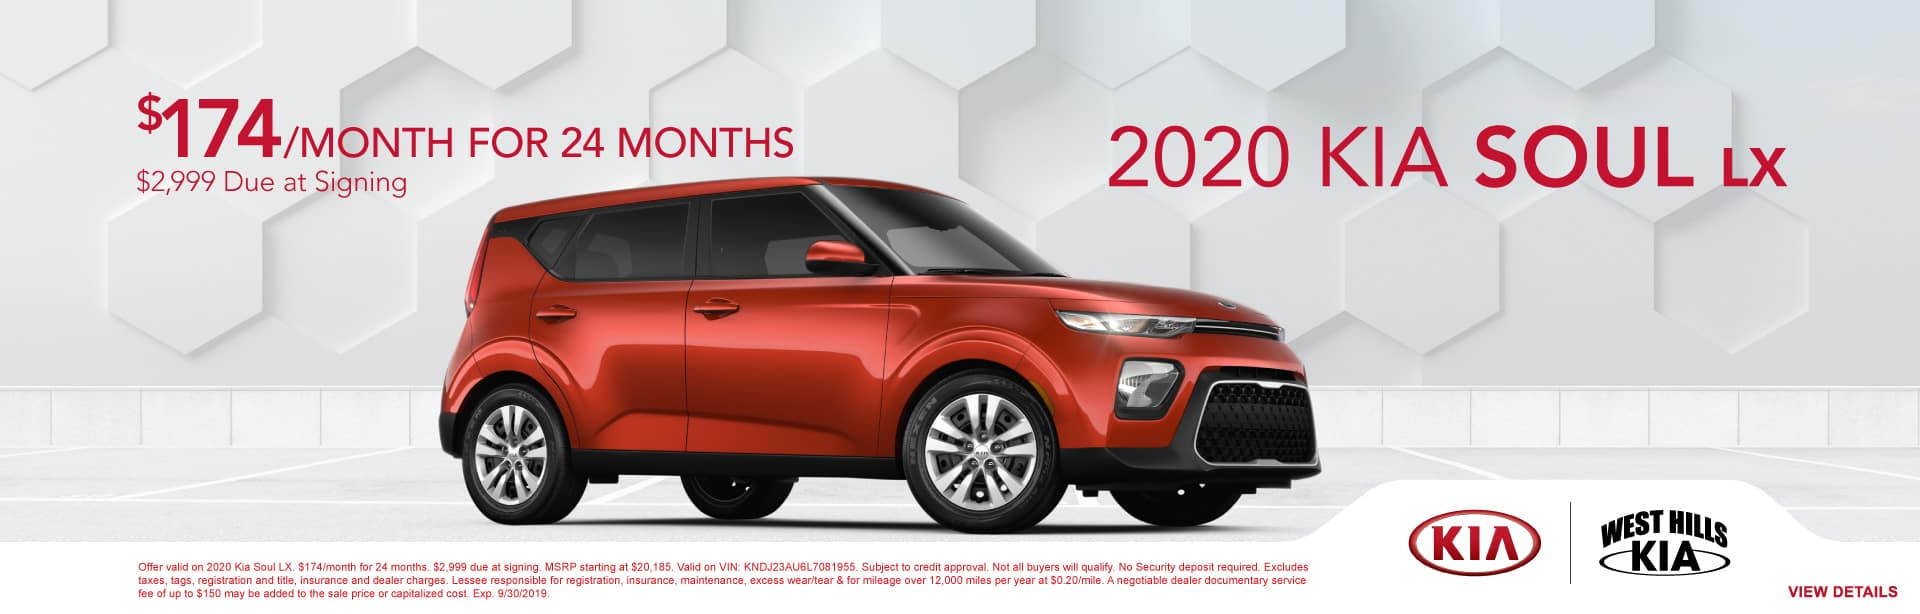 2020 Kia Soul LX (featured vehicle)  $174/month for 24 months  $2,999 Due at Signing   Offer valid on 2020 Kia Soul LX. $174/month for 24 months. $2,999 due at signing. MSRP starting at $20,185. Valid on VIN: KNDJ23AU6L7081955. Subject to credit approval. Not all buyers will qualify. No Security deposit required. Excludes taxes, tags, registration and title, insurance and dealer charges. Lessee responsible for registration, insurance, maintenance, excess wear/tear & for mileage over 12,000 miles per year at $0.20/mile. A negotiable dealer documentary service fee of up to $150 may be added to the sale price or capitalized cost. Exp. 9/30/2019.